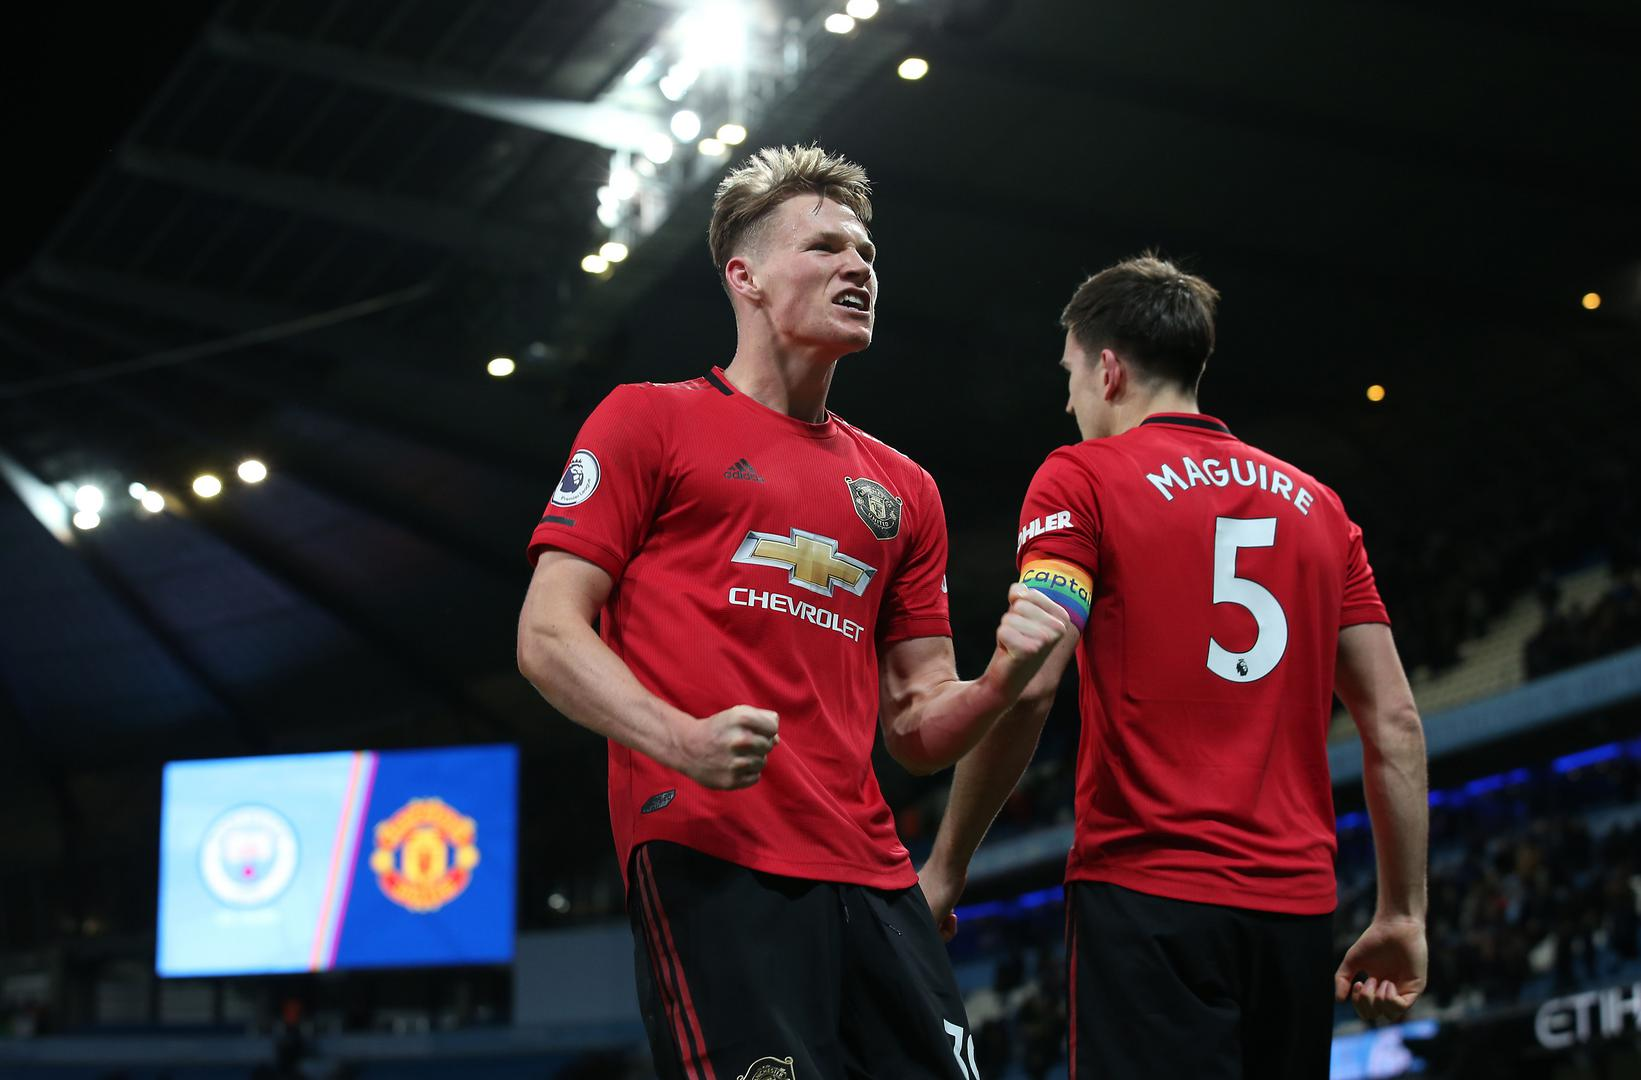 Scott McTominay and Harry Maguire celebrate winning the Manchester derby.